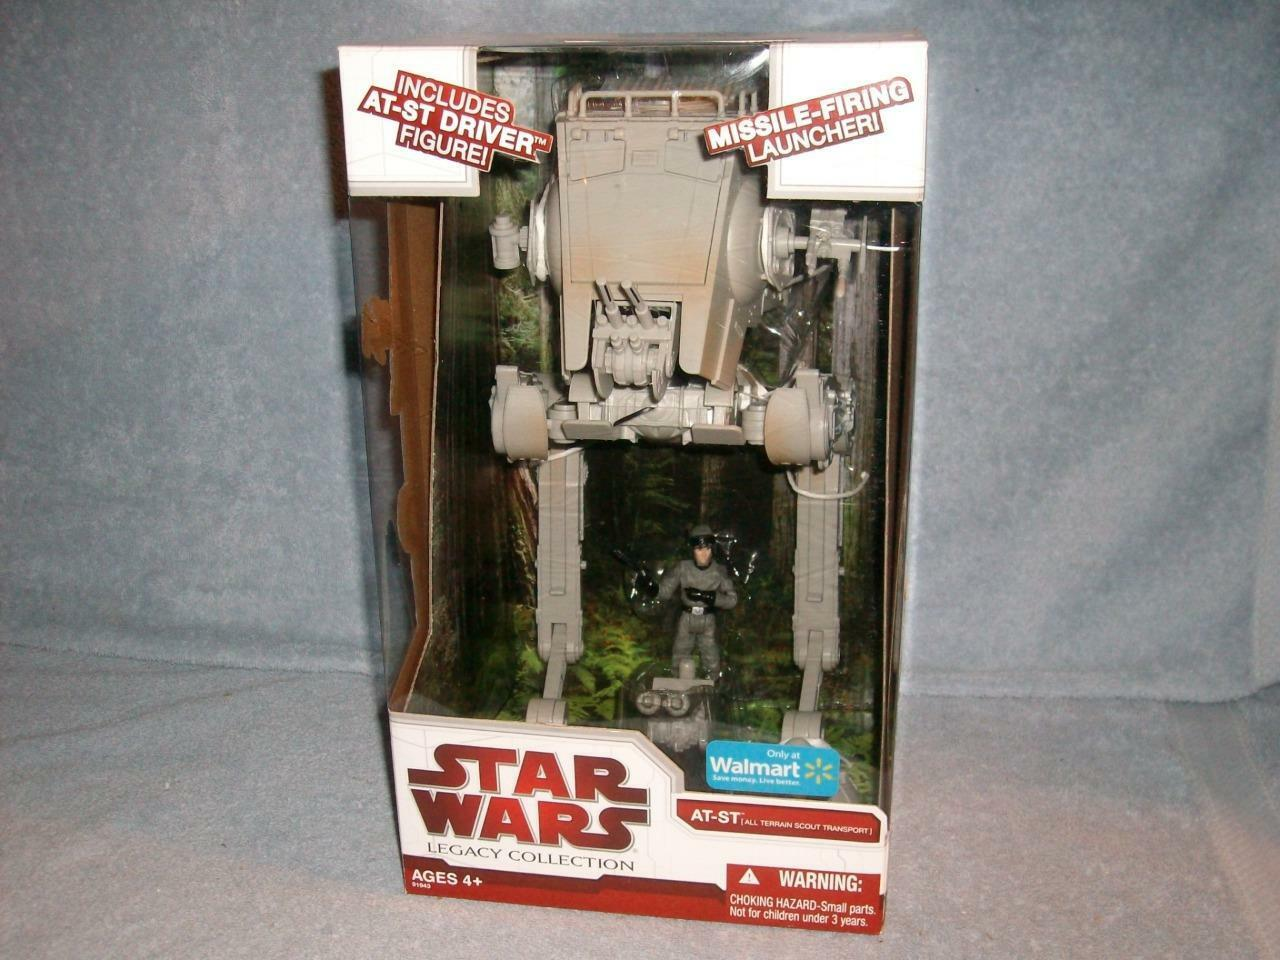 AT-ST & Driver Star Wars Legacy Collection Walmart Exclusive Hasbro 2009 Opened